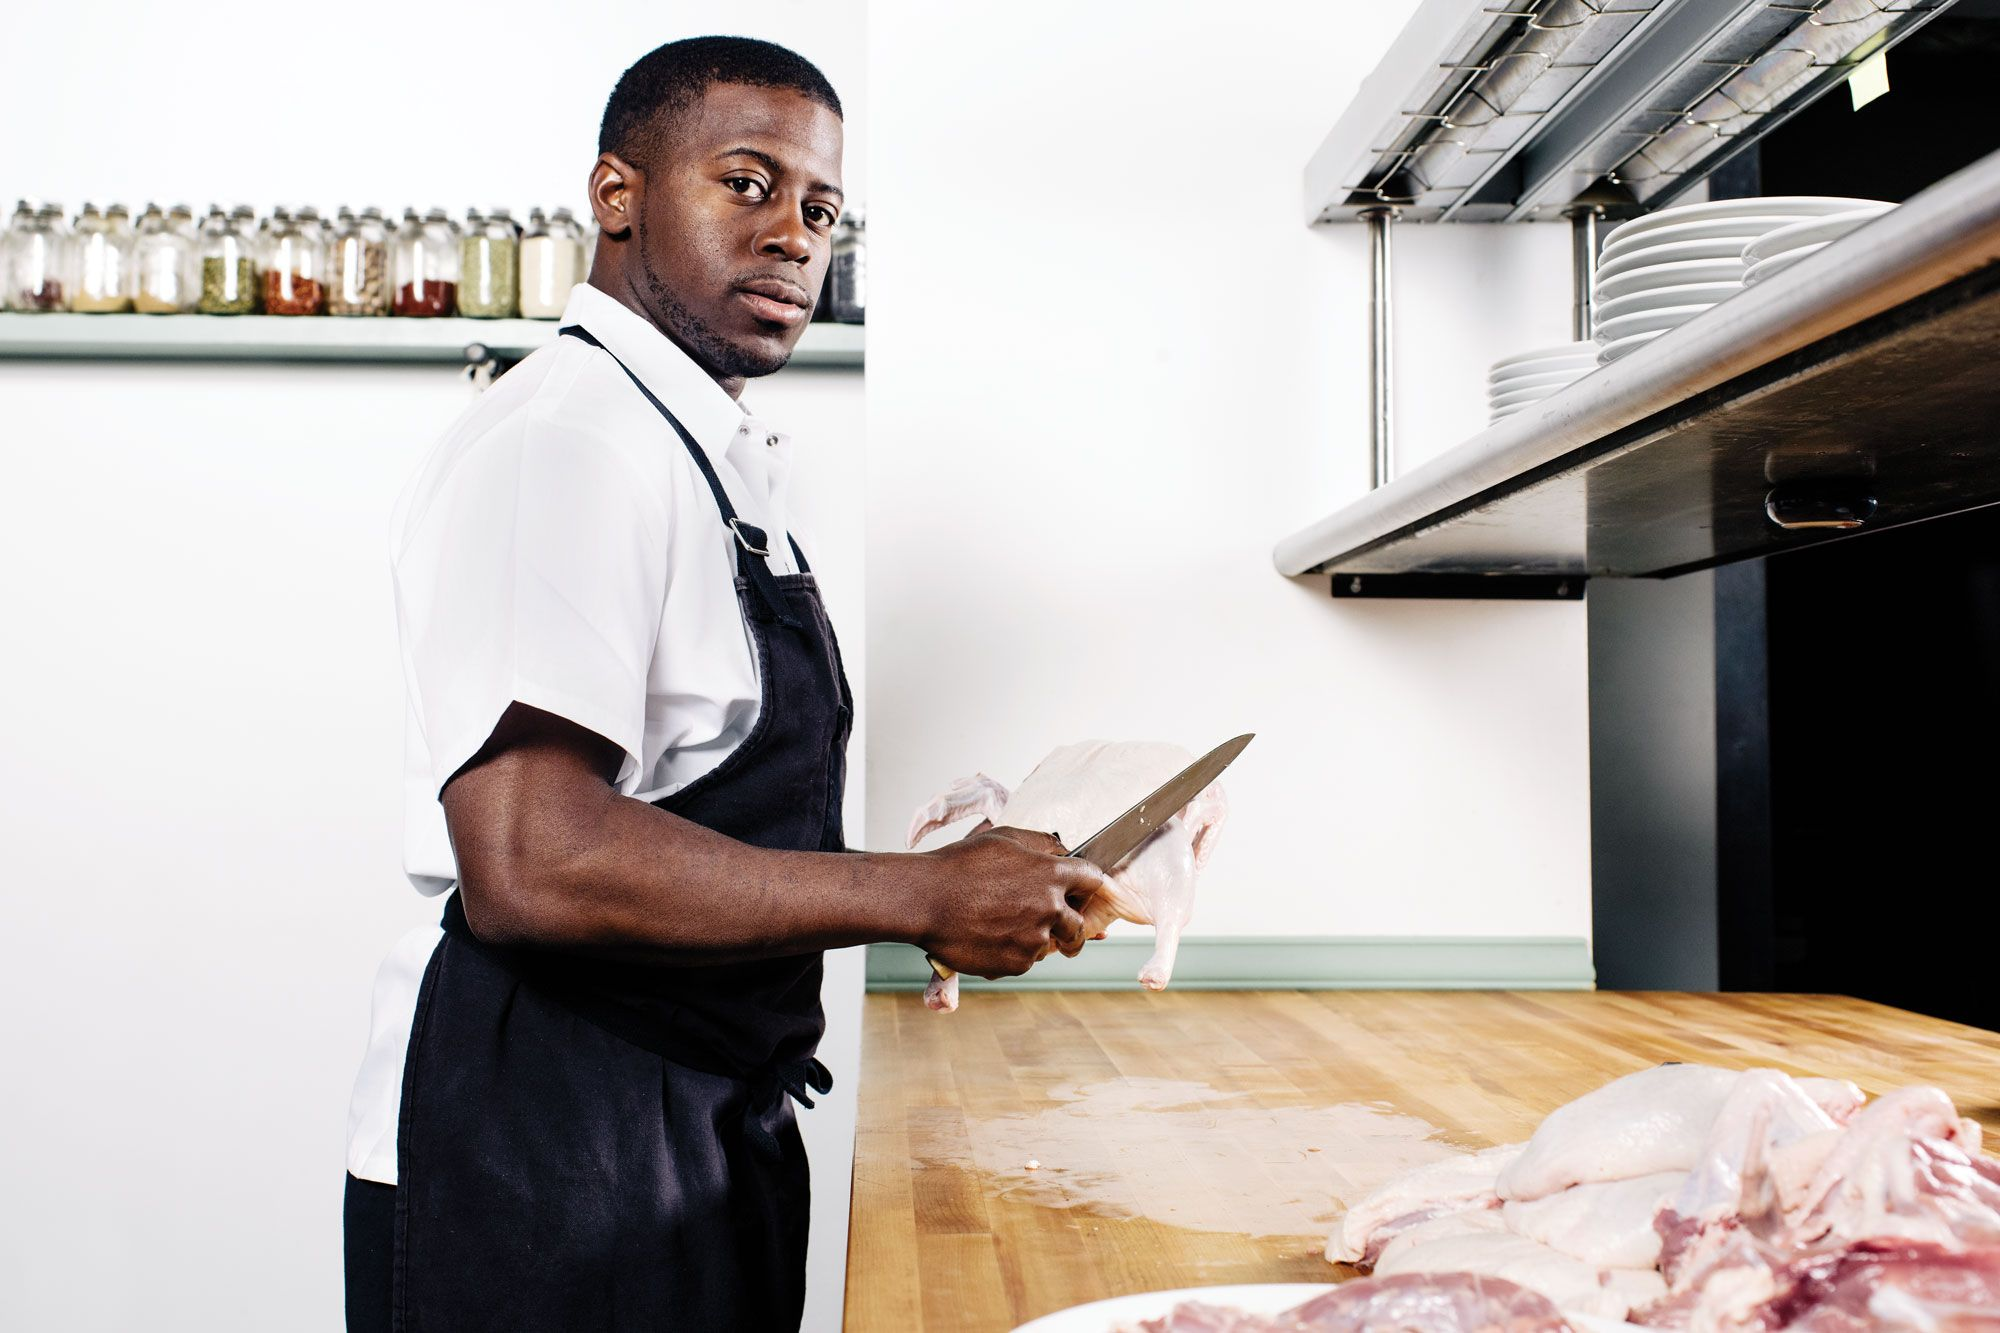 On Being Black in the Kitchen - Edouardo Jordan on the lack of black ...